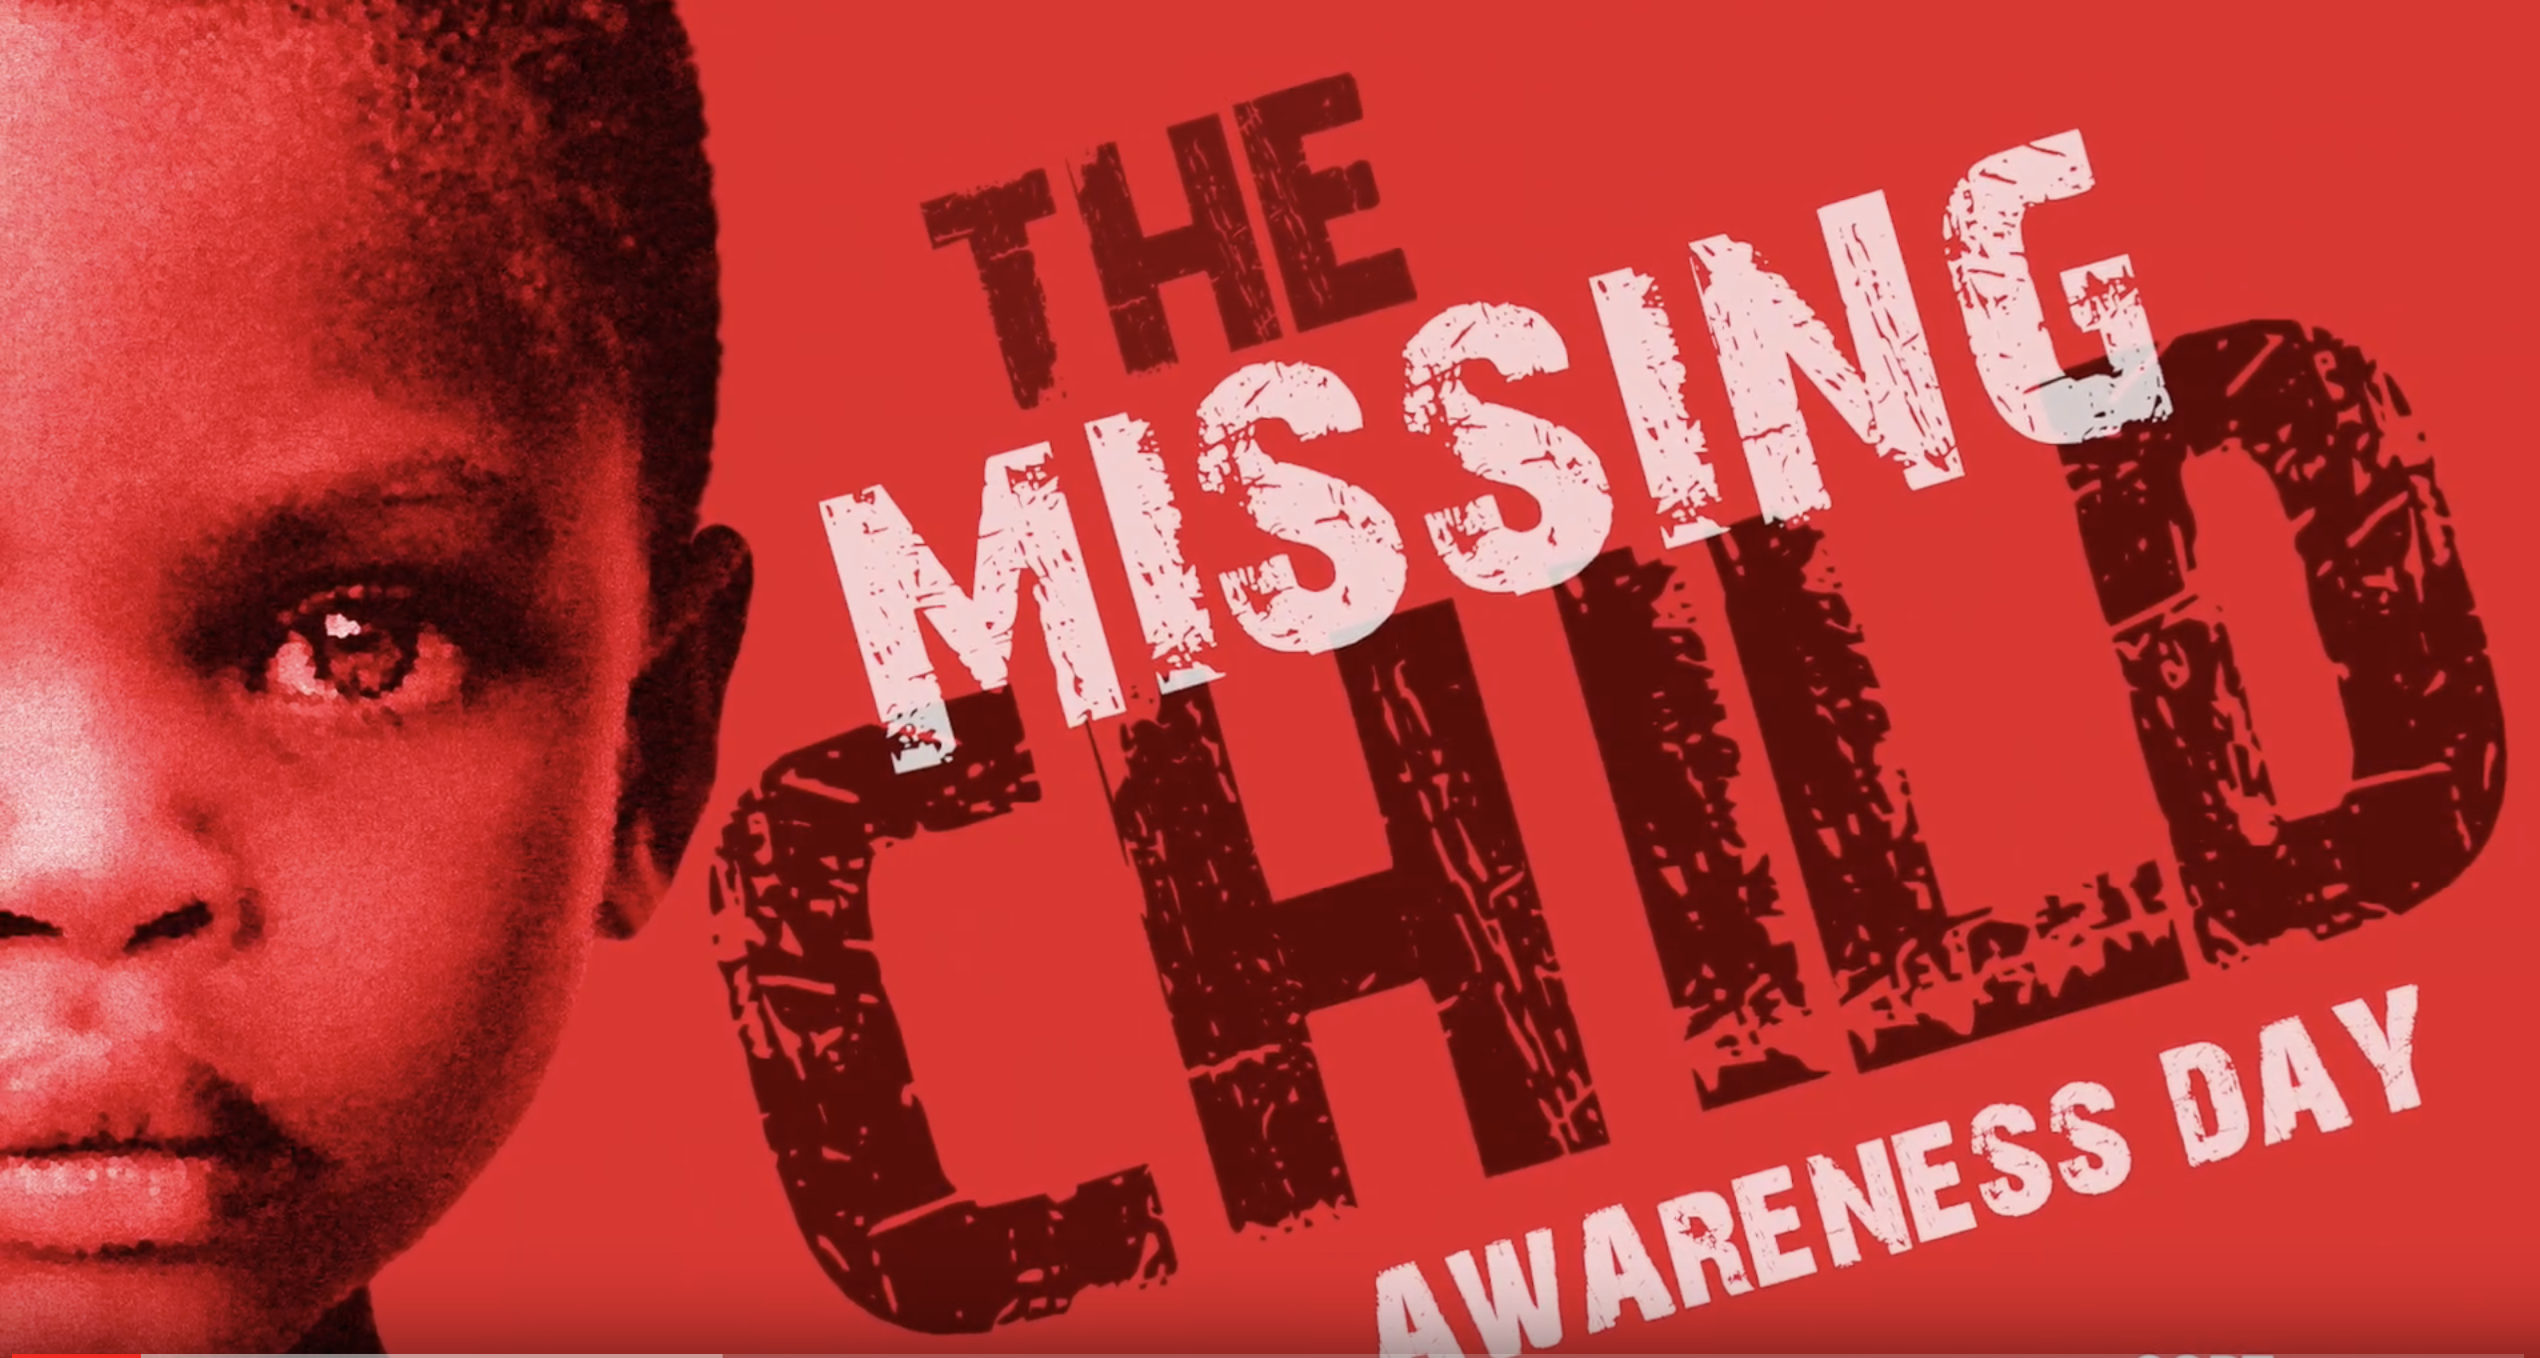 The Missing Child Awareness Day